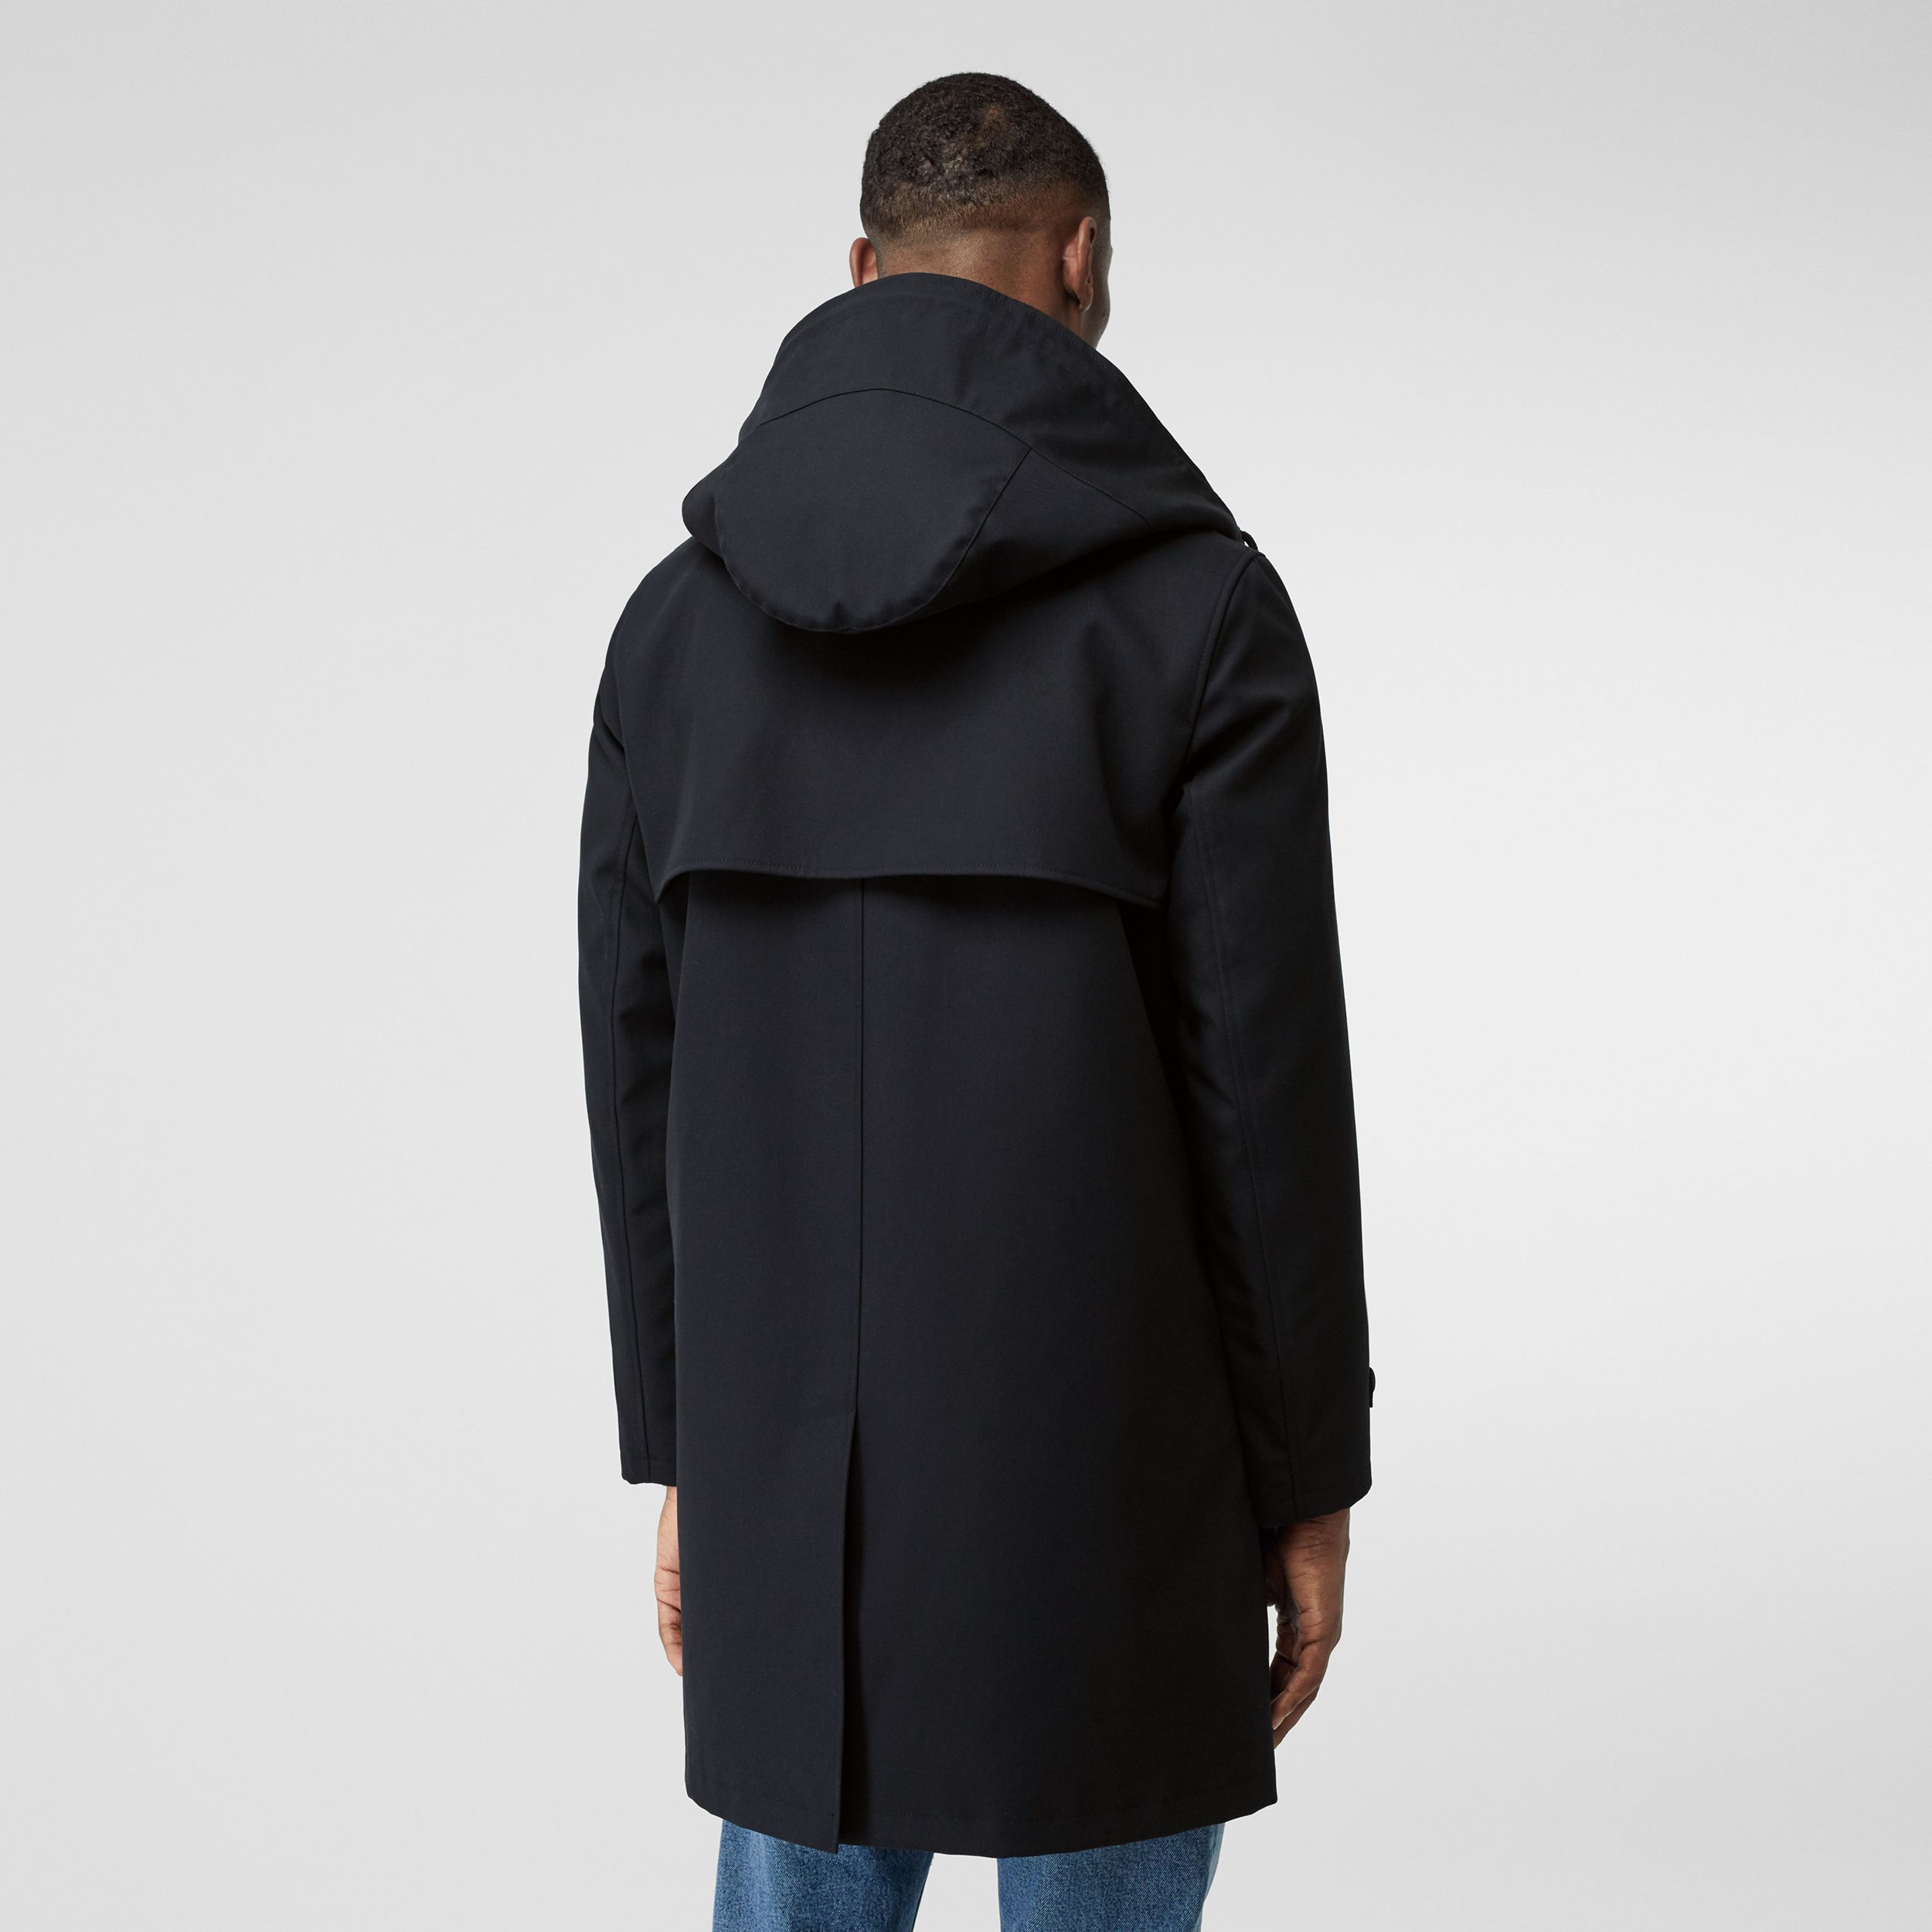 Cotton Gabardine Coat with Detachable Warmer in Midnight - Men | Burberry Canada - 3